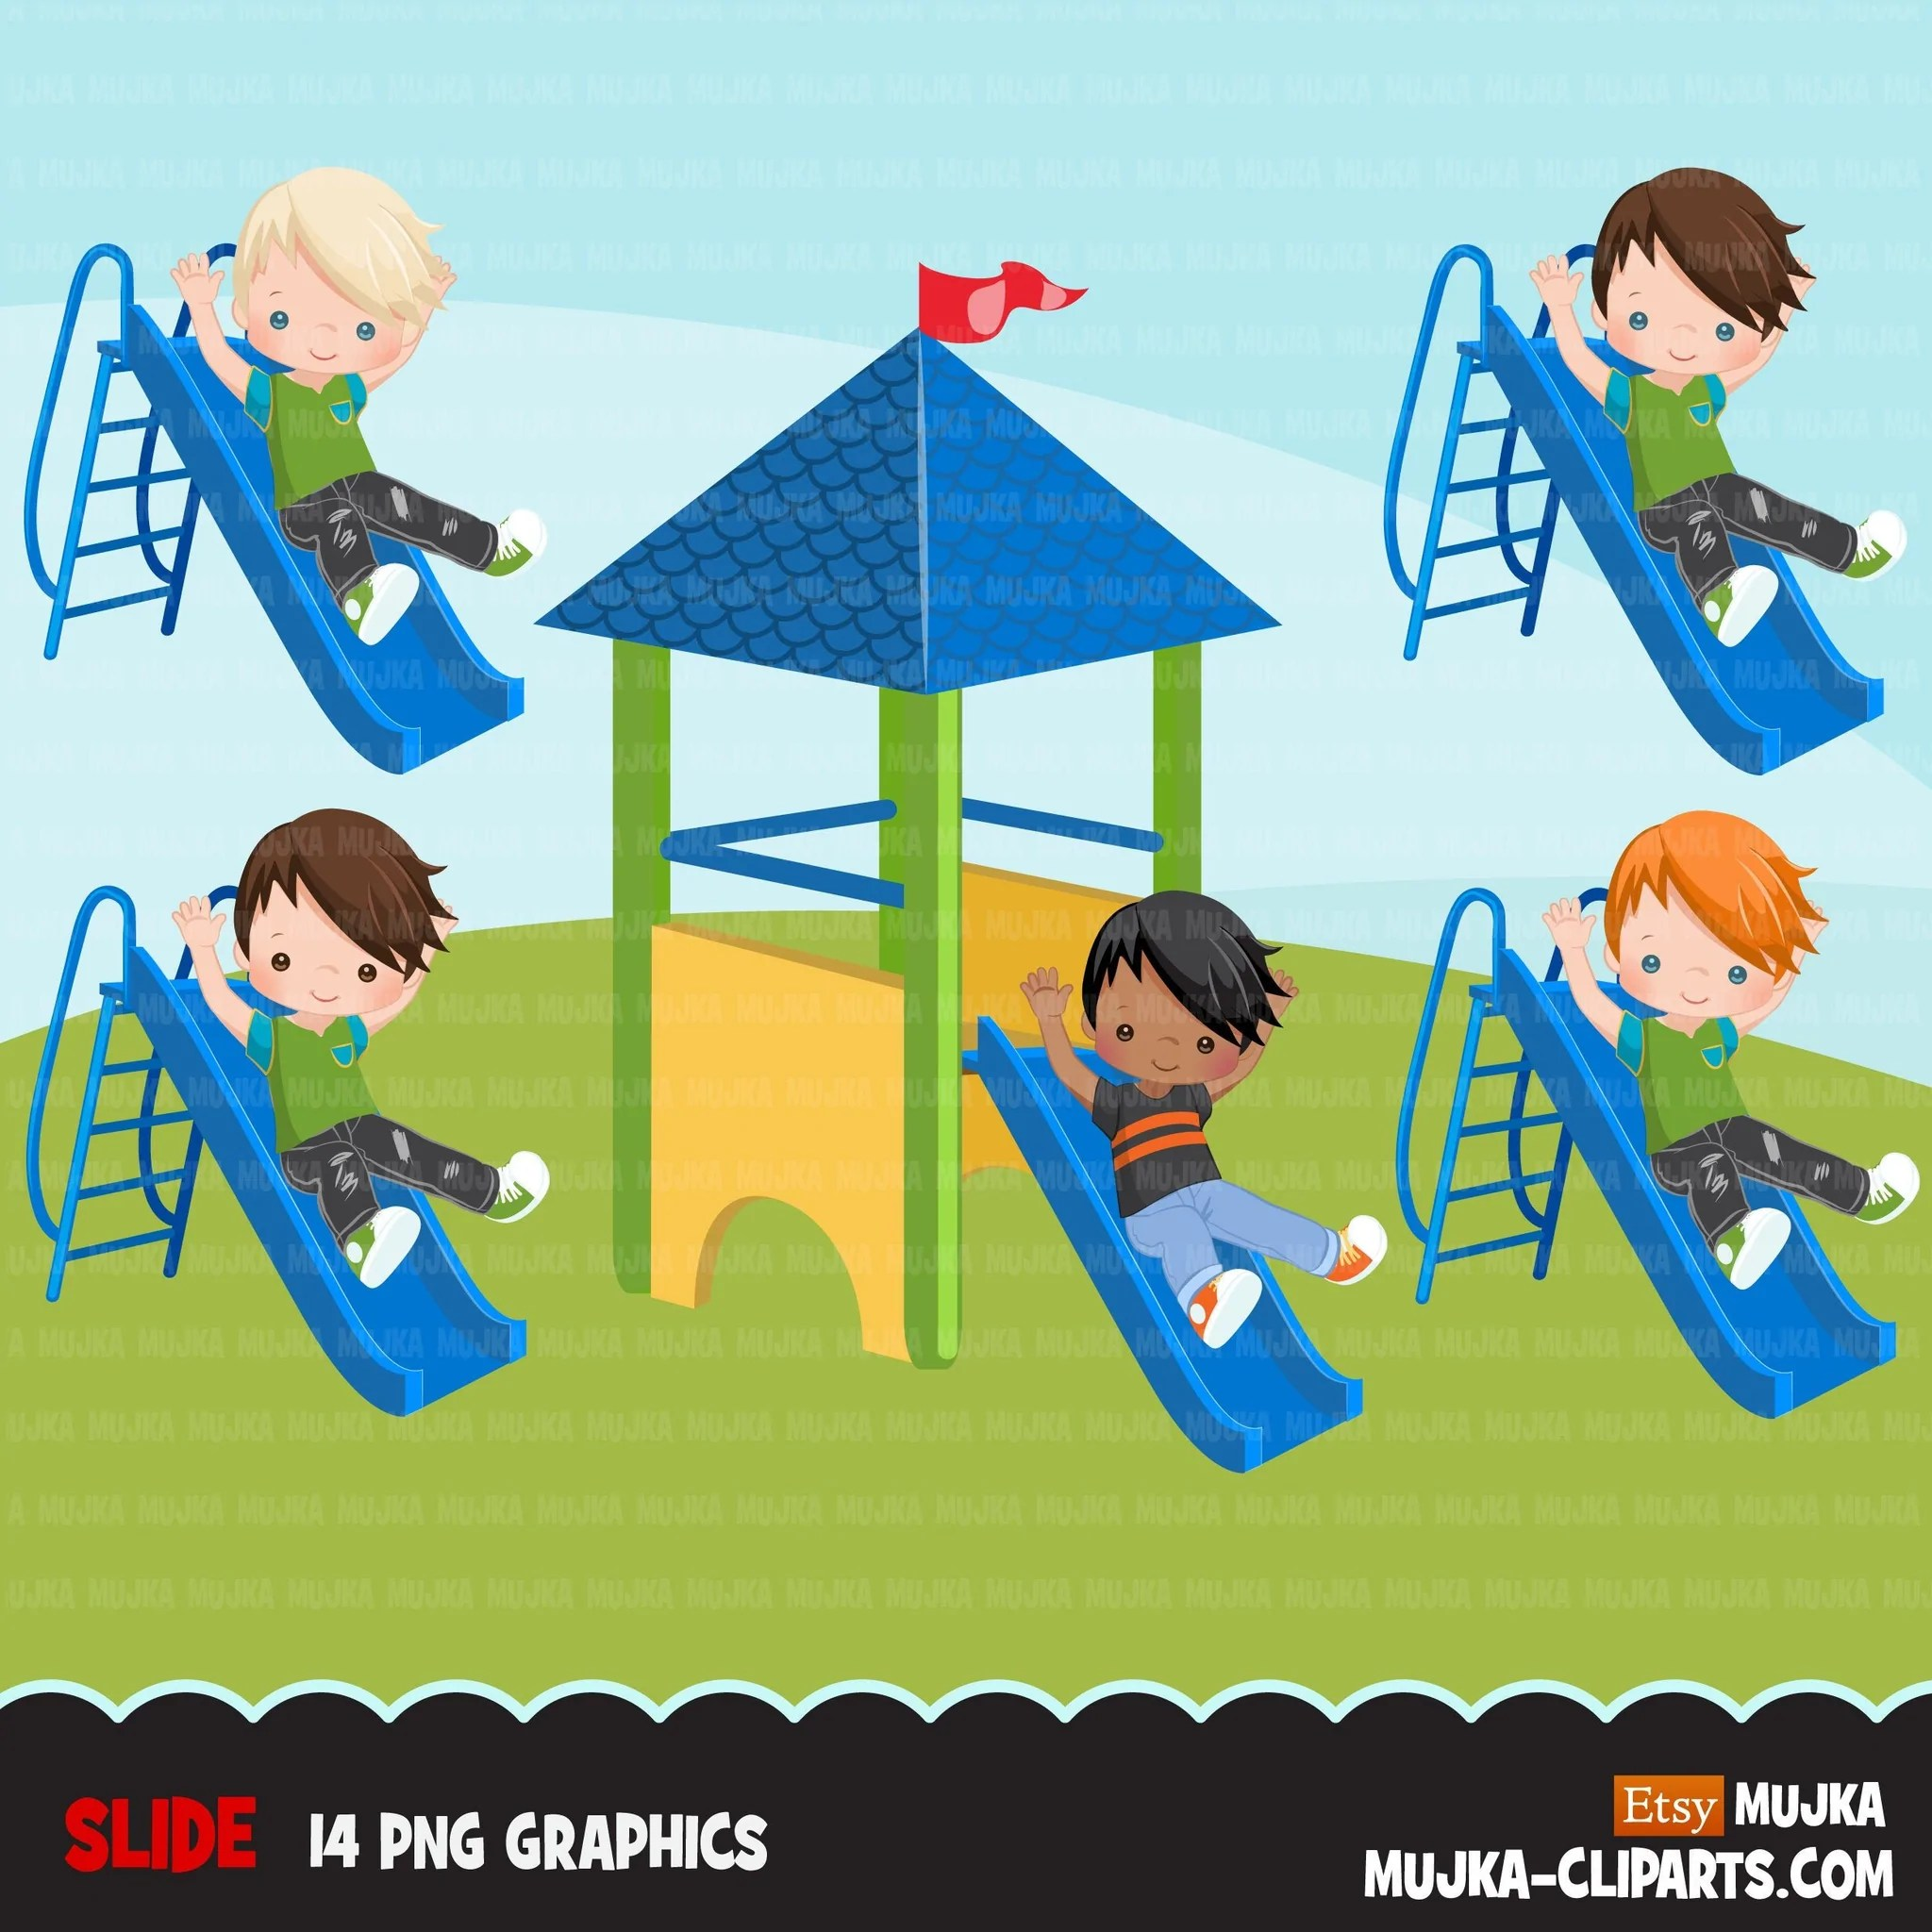 Playground Clipart Boy On Slide Outdoors Park Slide Graphics Kinder Mujka Cliparts